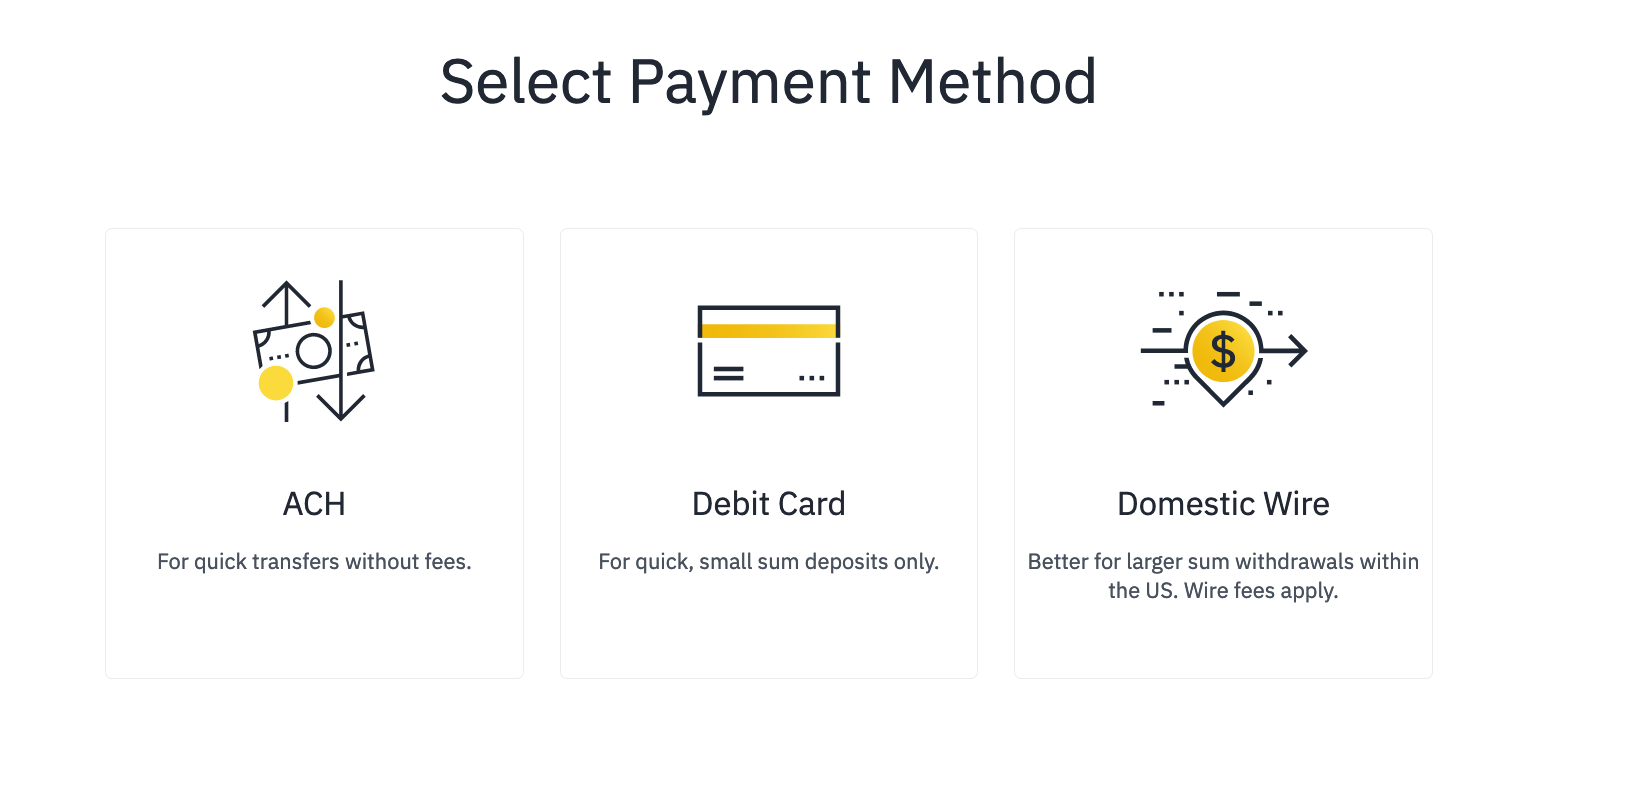 Reiff 19.select payment method